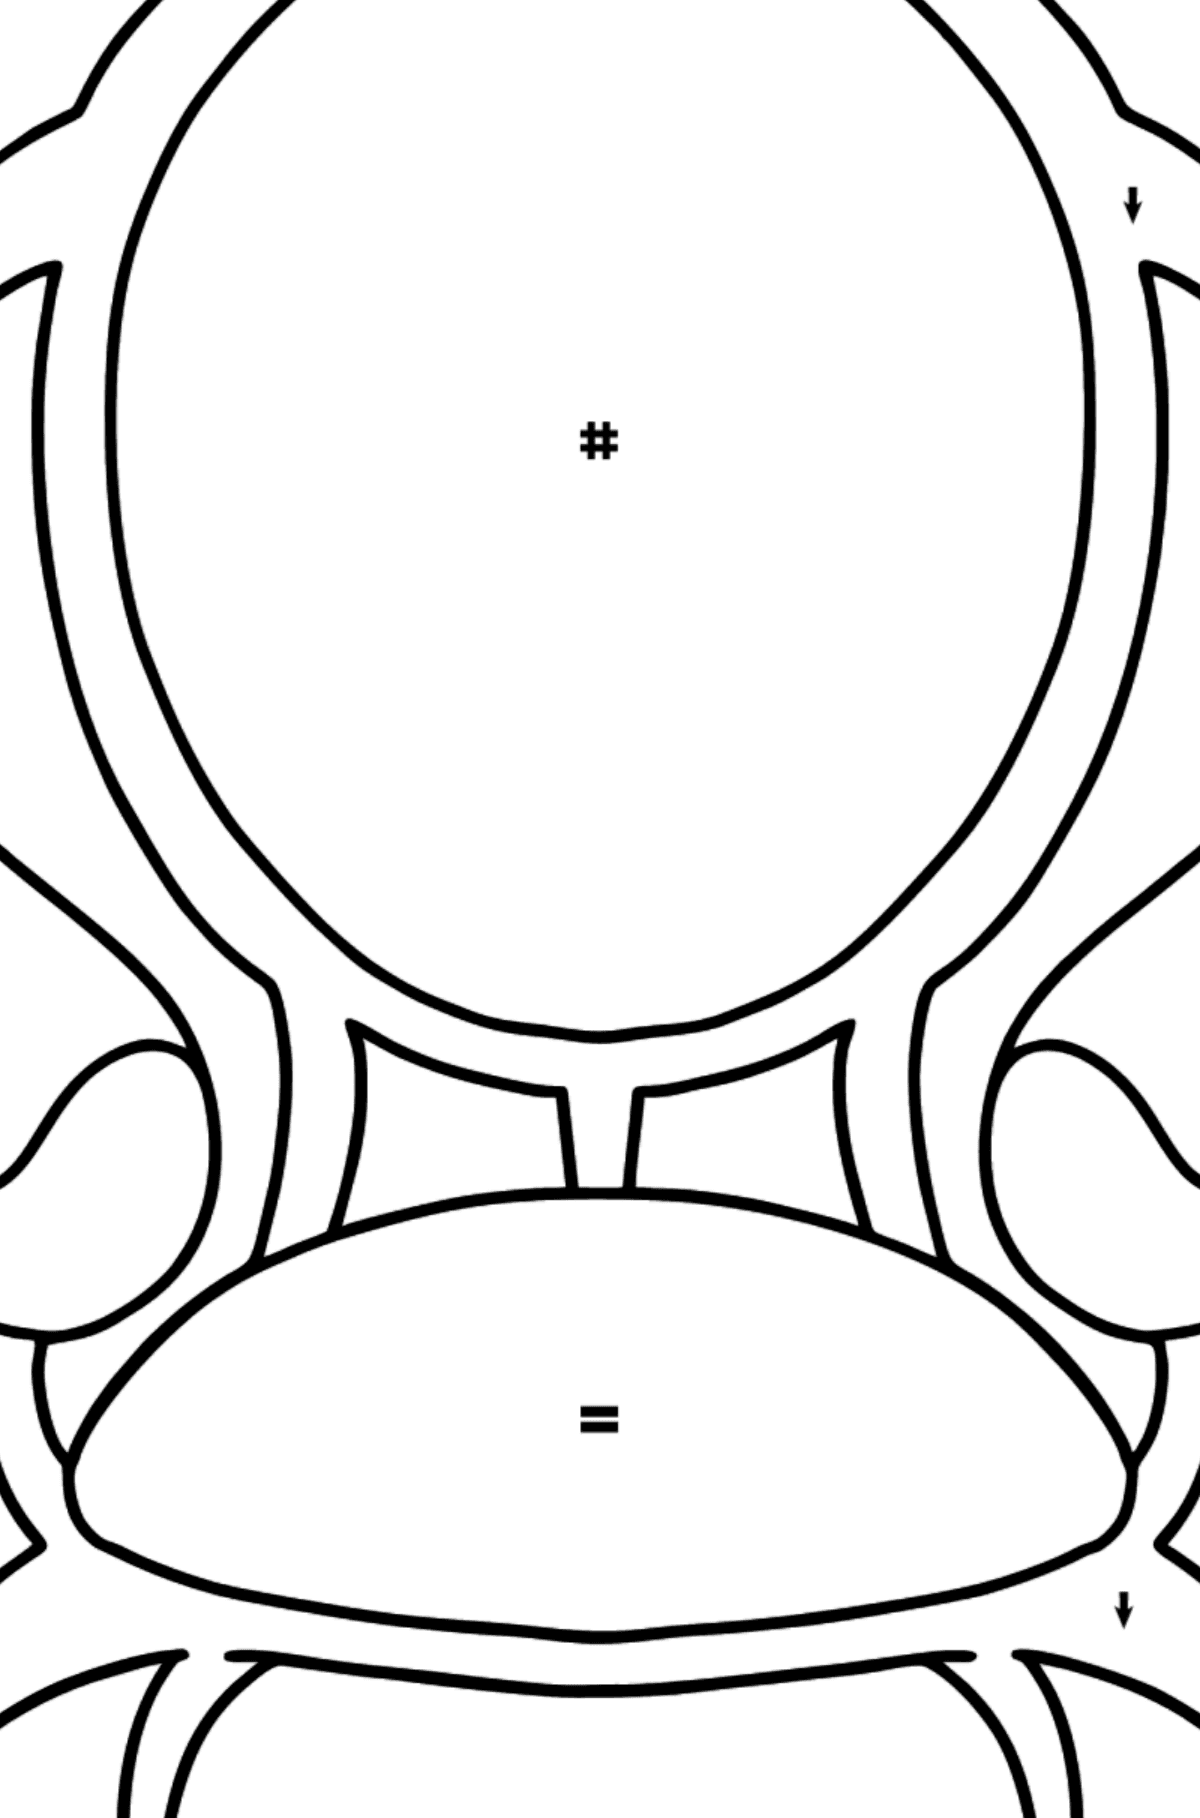 Soft Chair coloring page - Coloring by Symbols for Kids